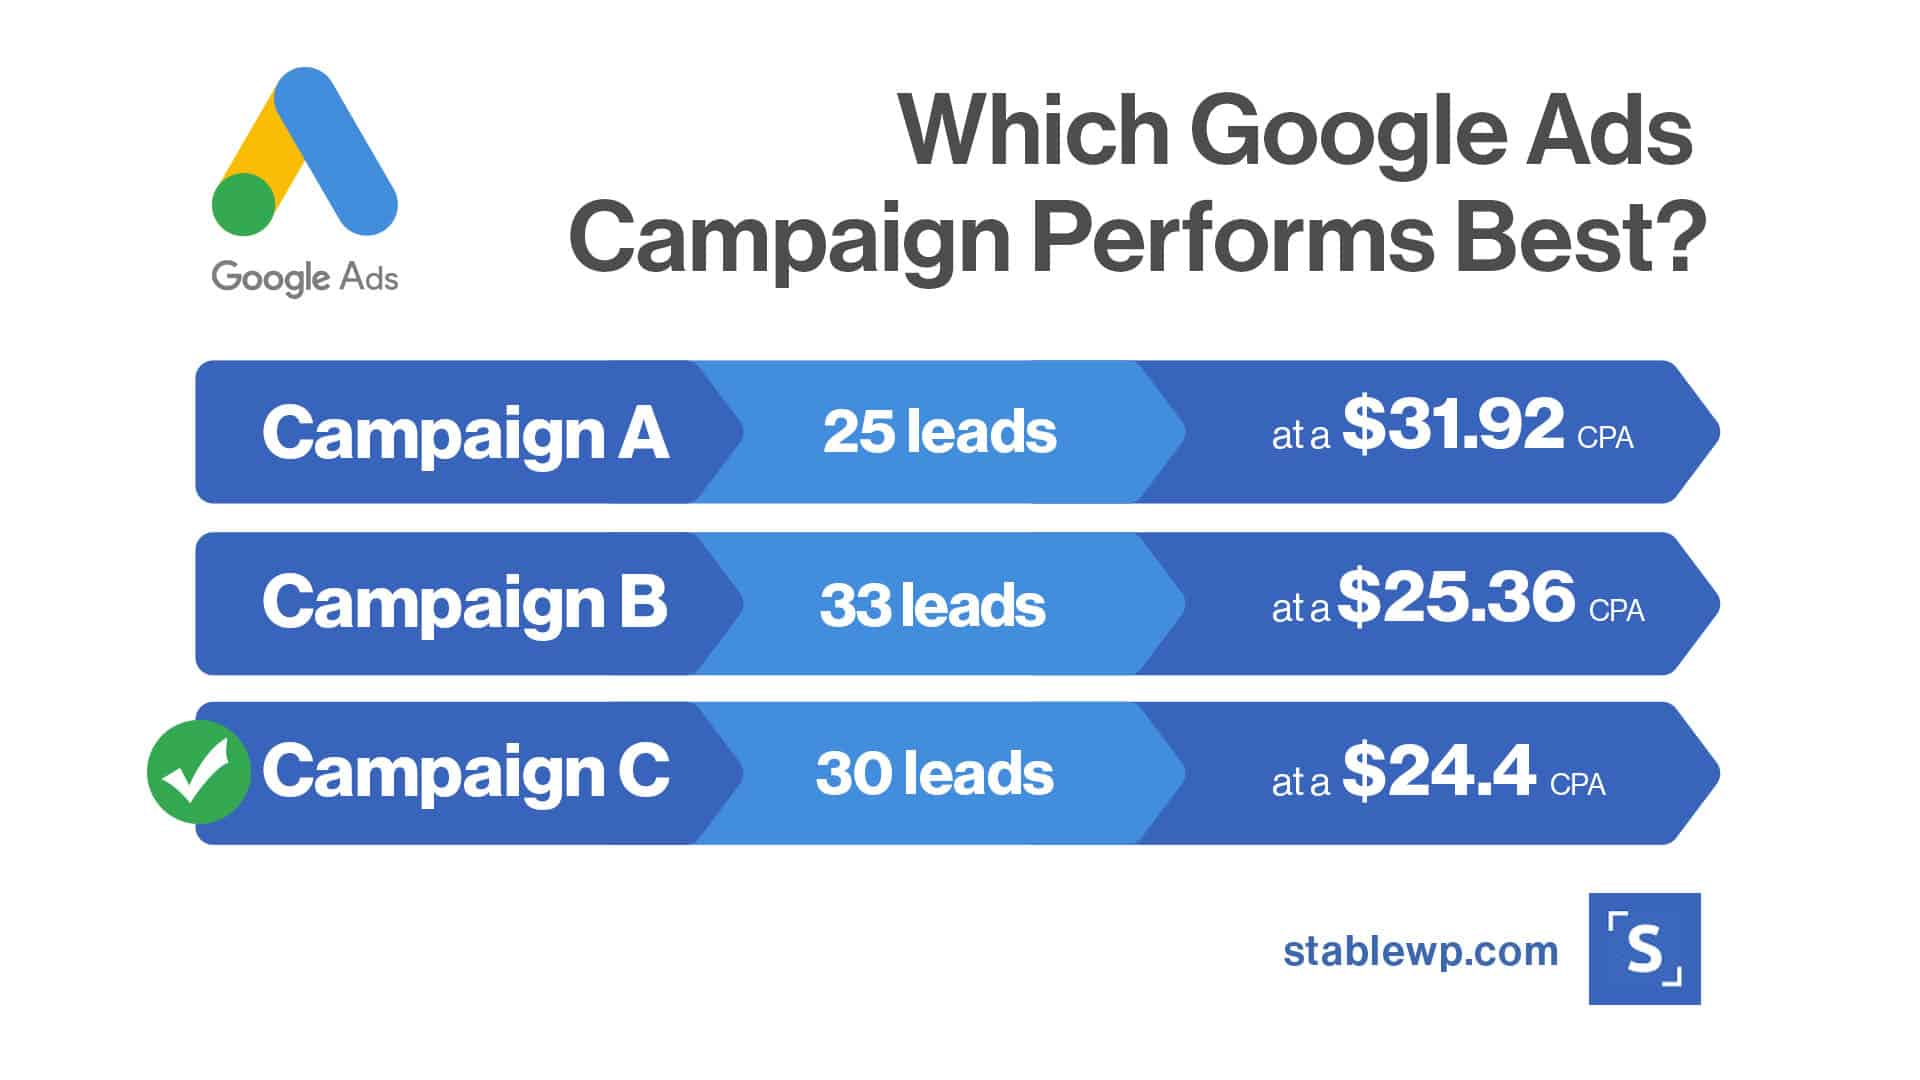 which Google Ads campaign performs best based on the number of leads and the CPA